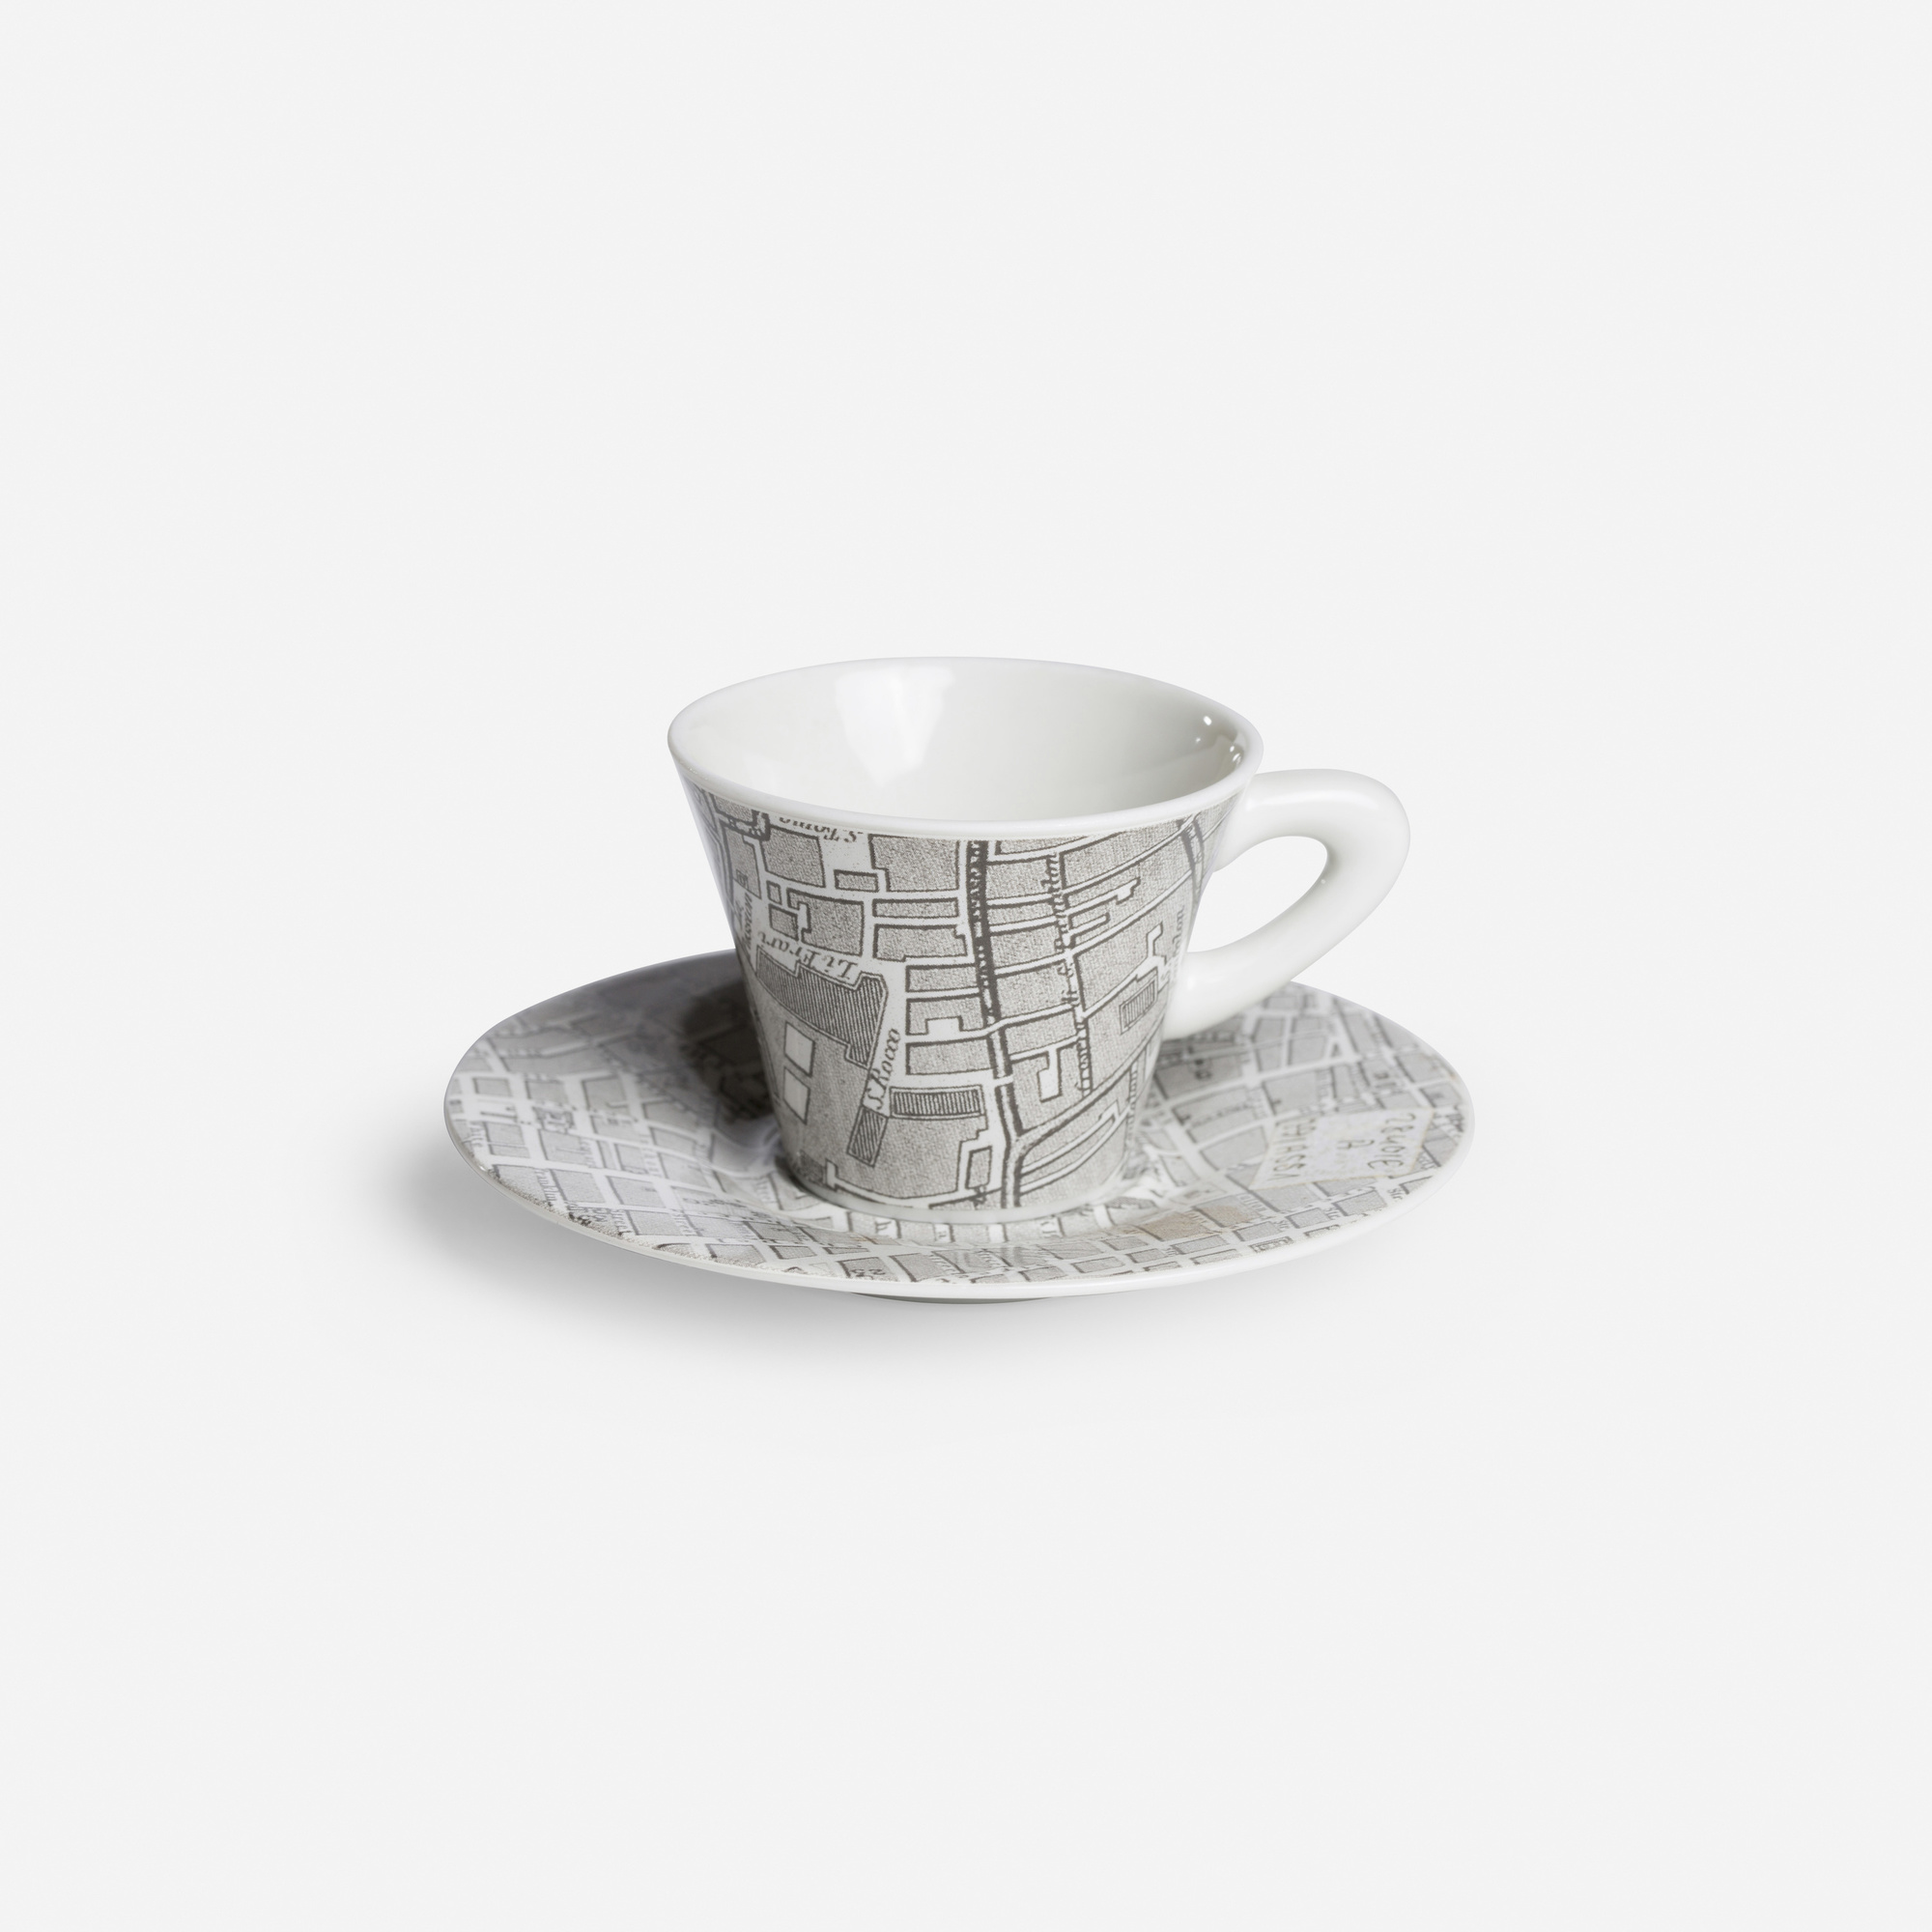 913: Philip Johnson / Prototype Silver Cities demitasse cup and saucer (1 of 1)